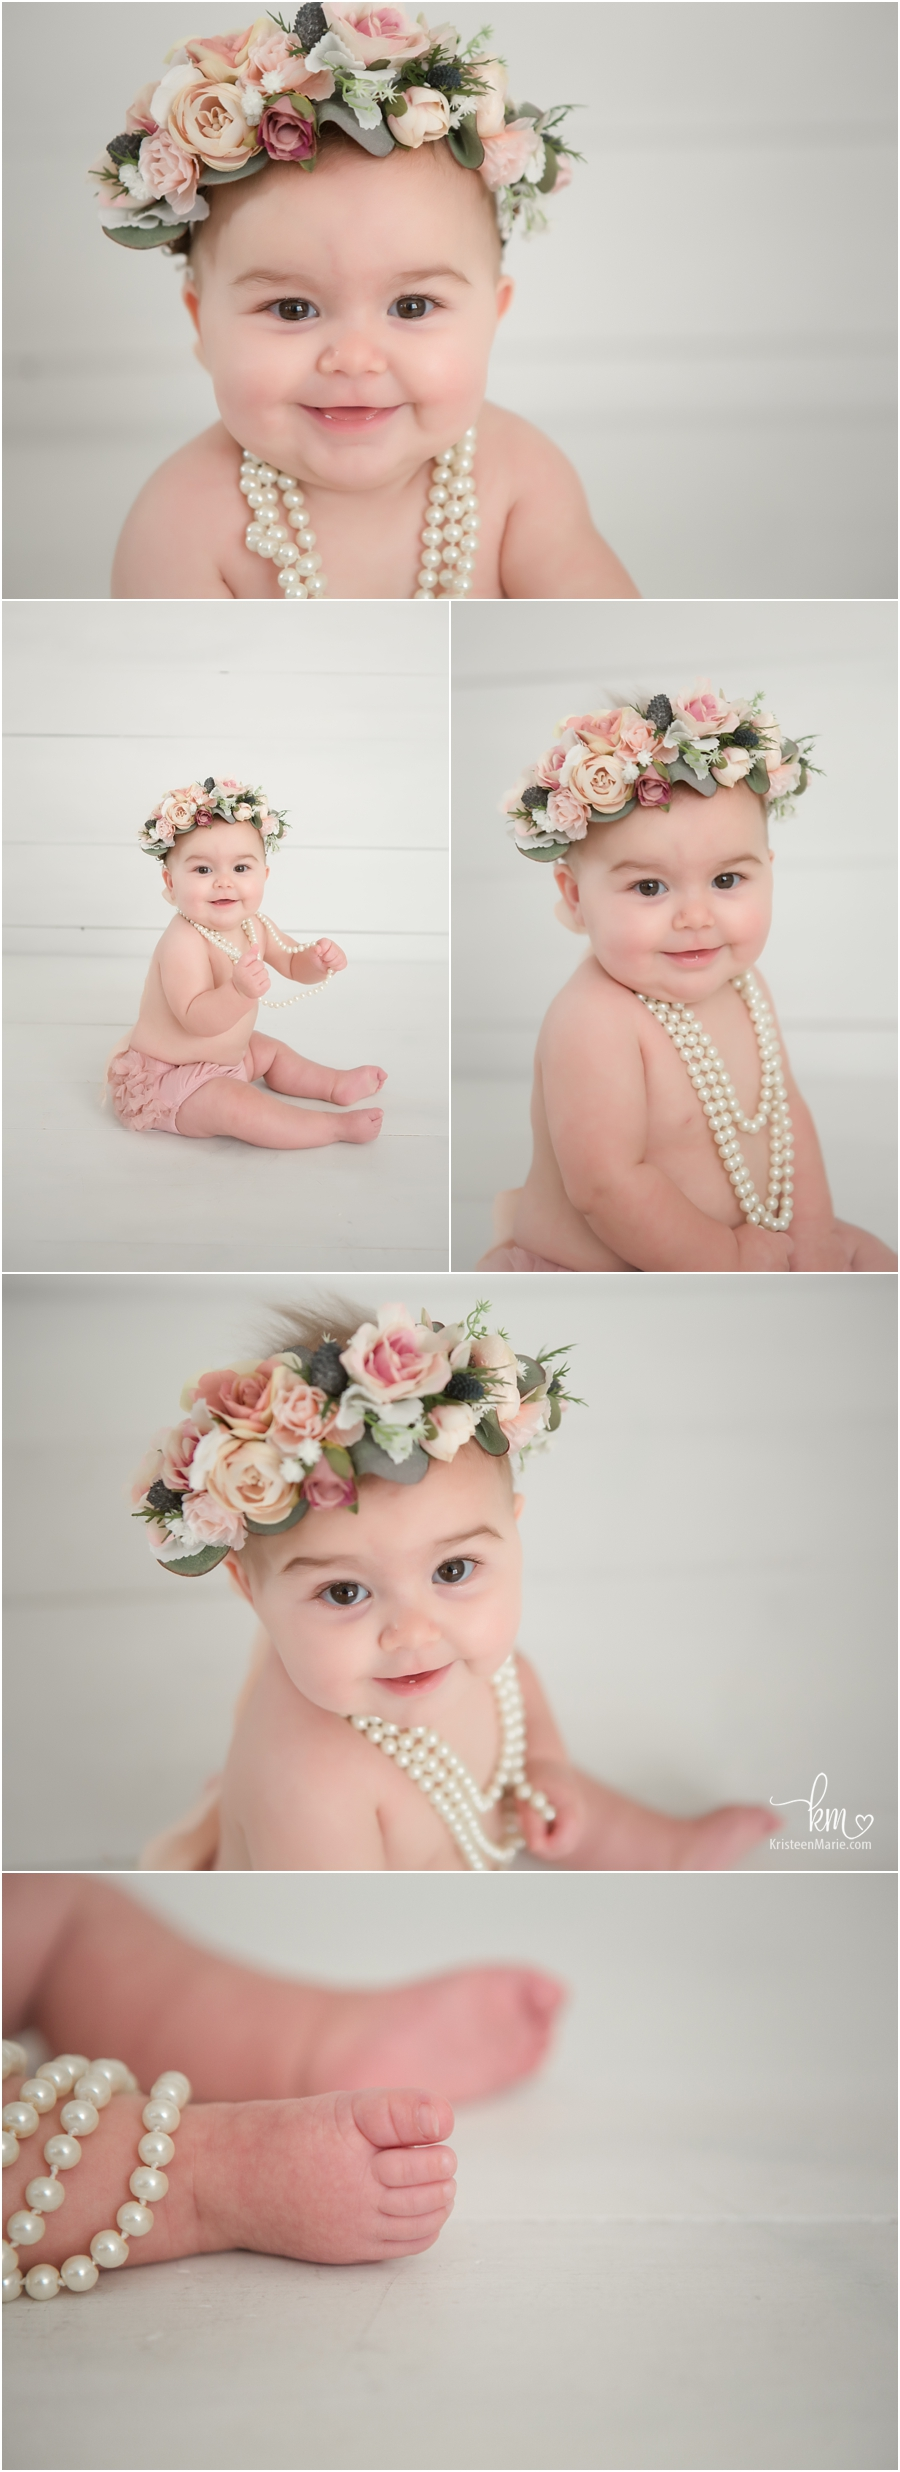 sitter session - baby in pink floral crown in studio